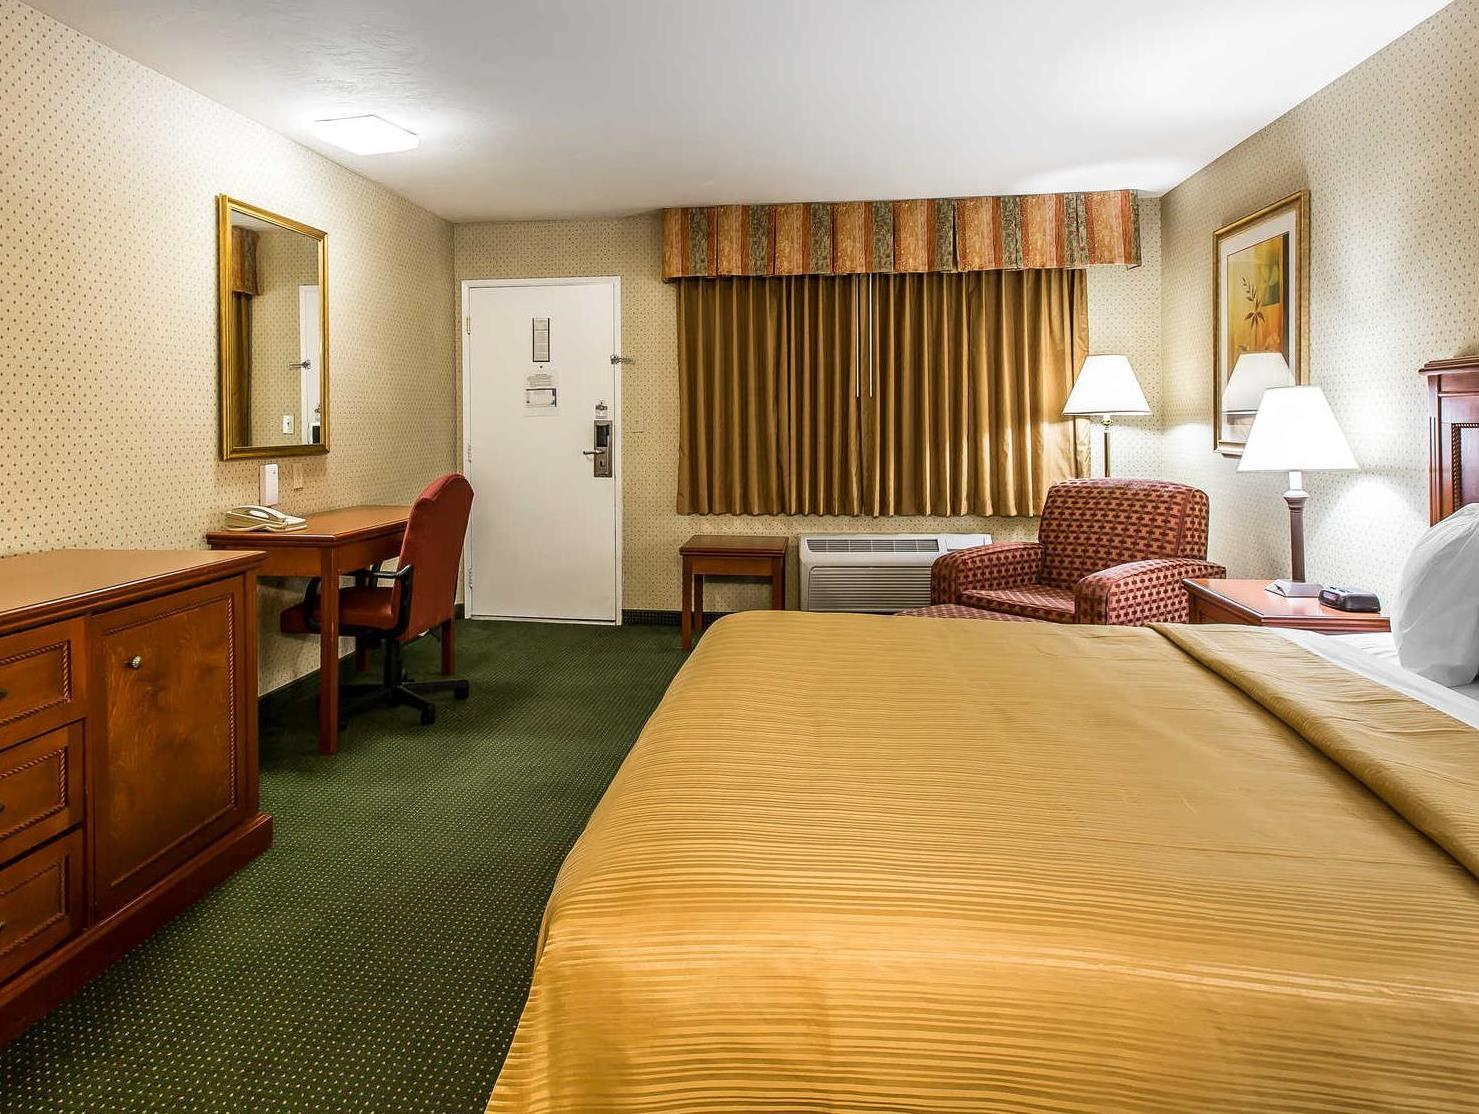 Book Quality Inn Near China Lake Naval Station  Ridgecrest